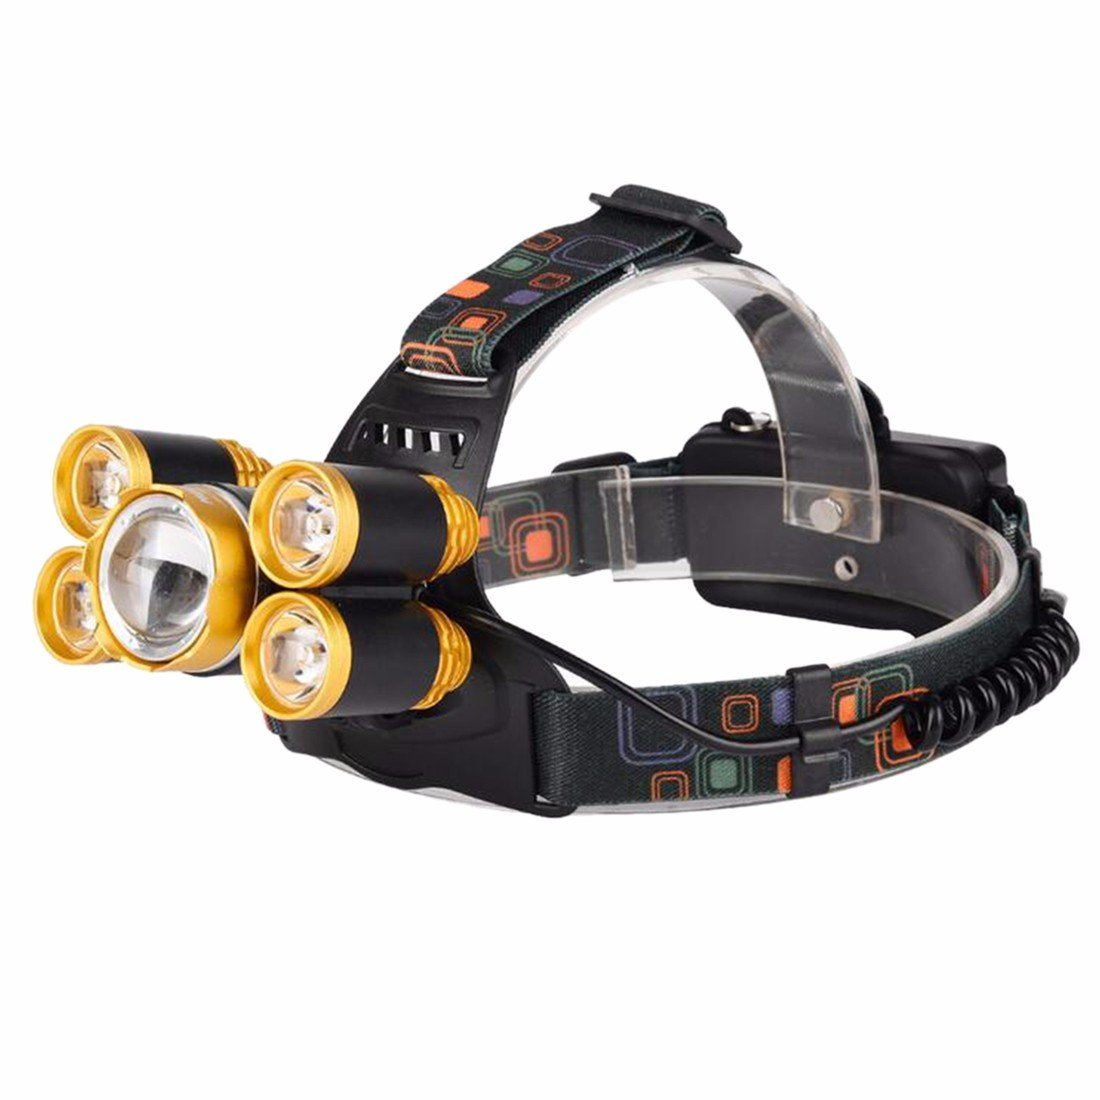 Ai.Moichien 5000 Lumens Headlamp LED Hands Free Headlight Waterproof Hard Lumen Bright Head Lights, Running or Camping Light